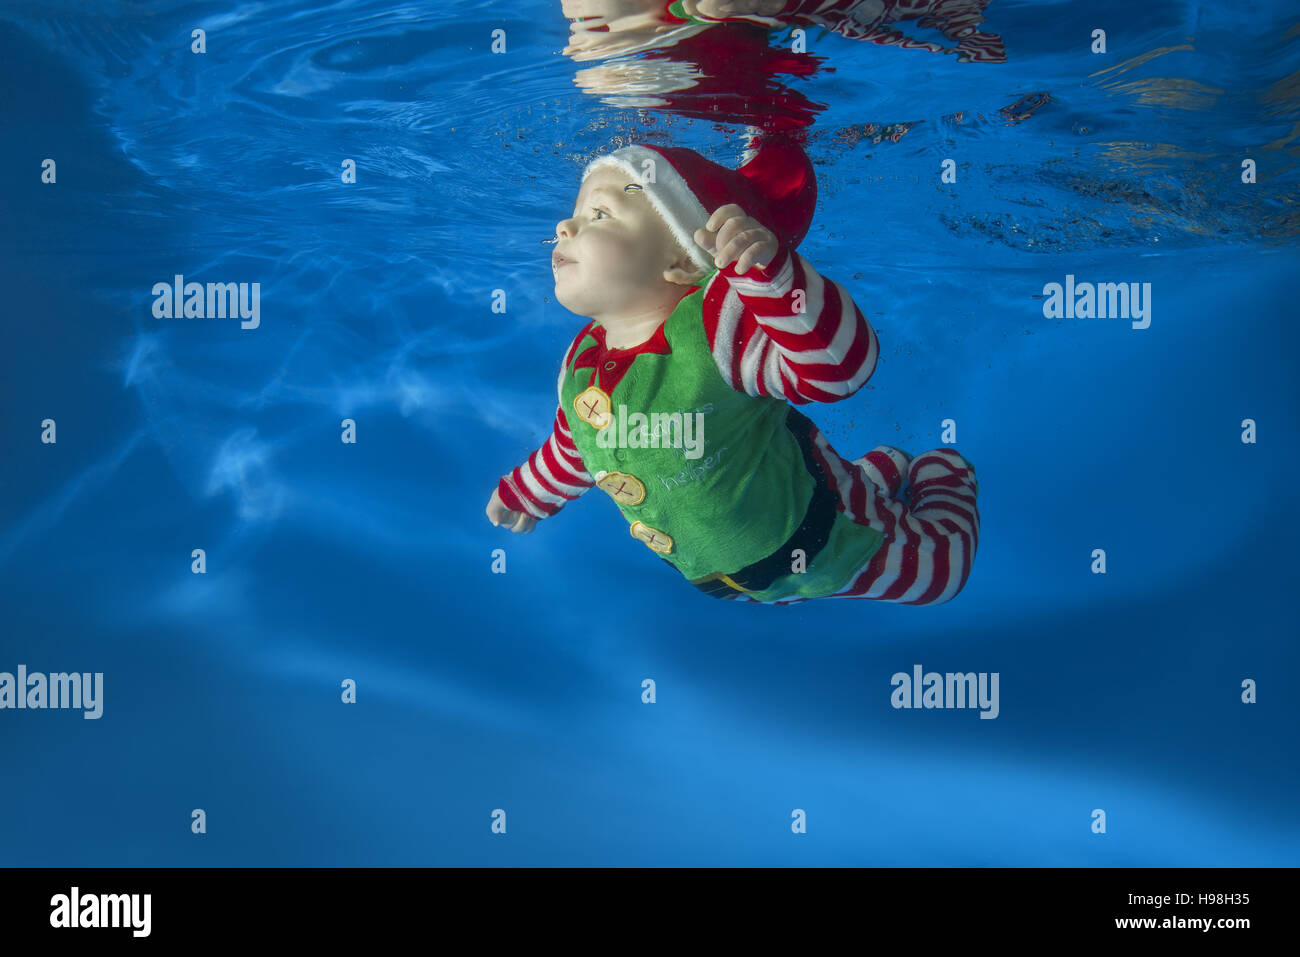 a little boy dressed as santas helper floats under water in the pool